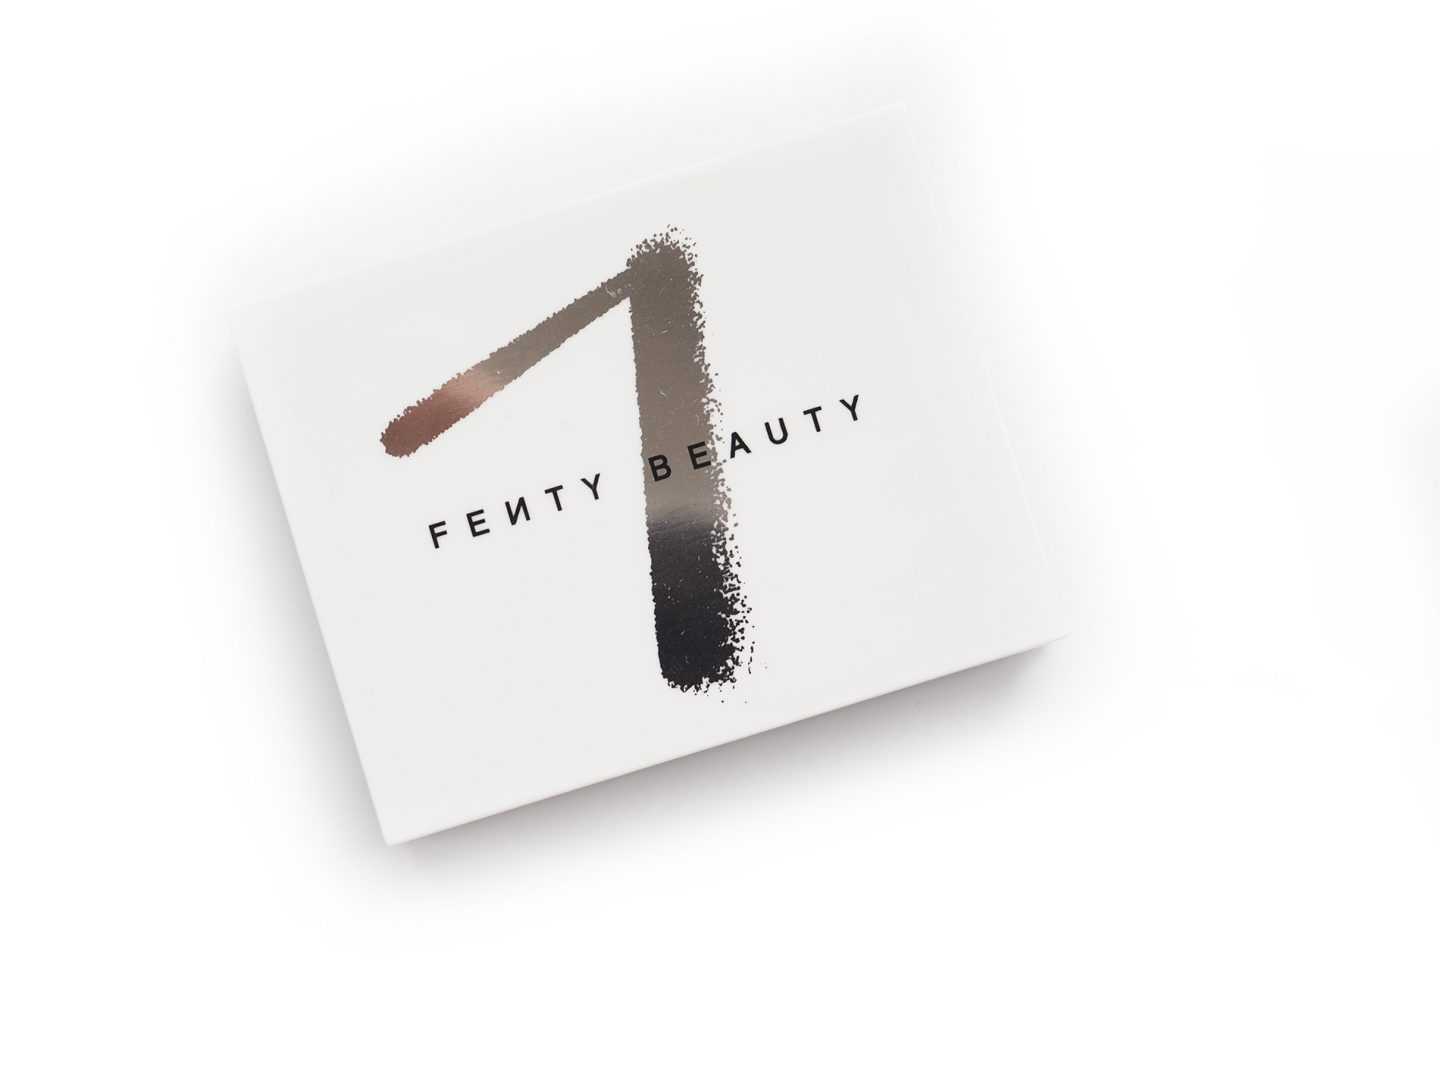 Fenty Beauty Cadet Snap Shadows